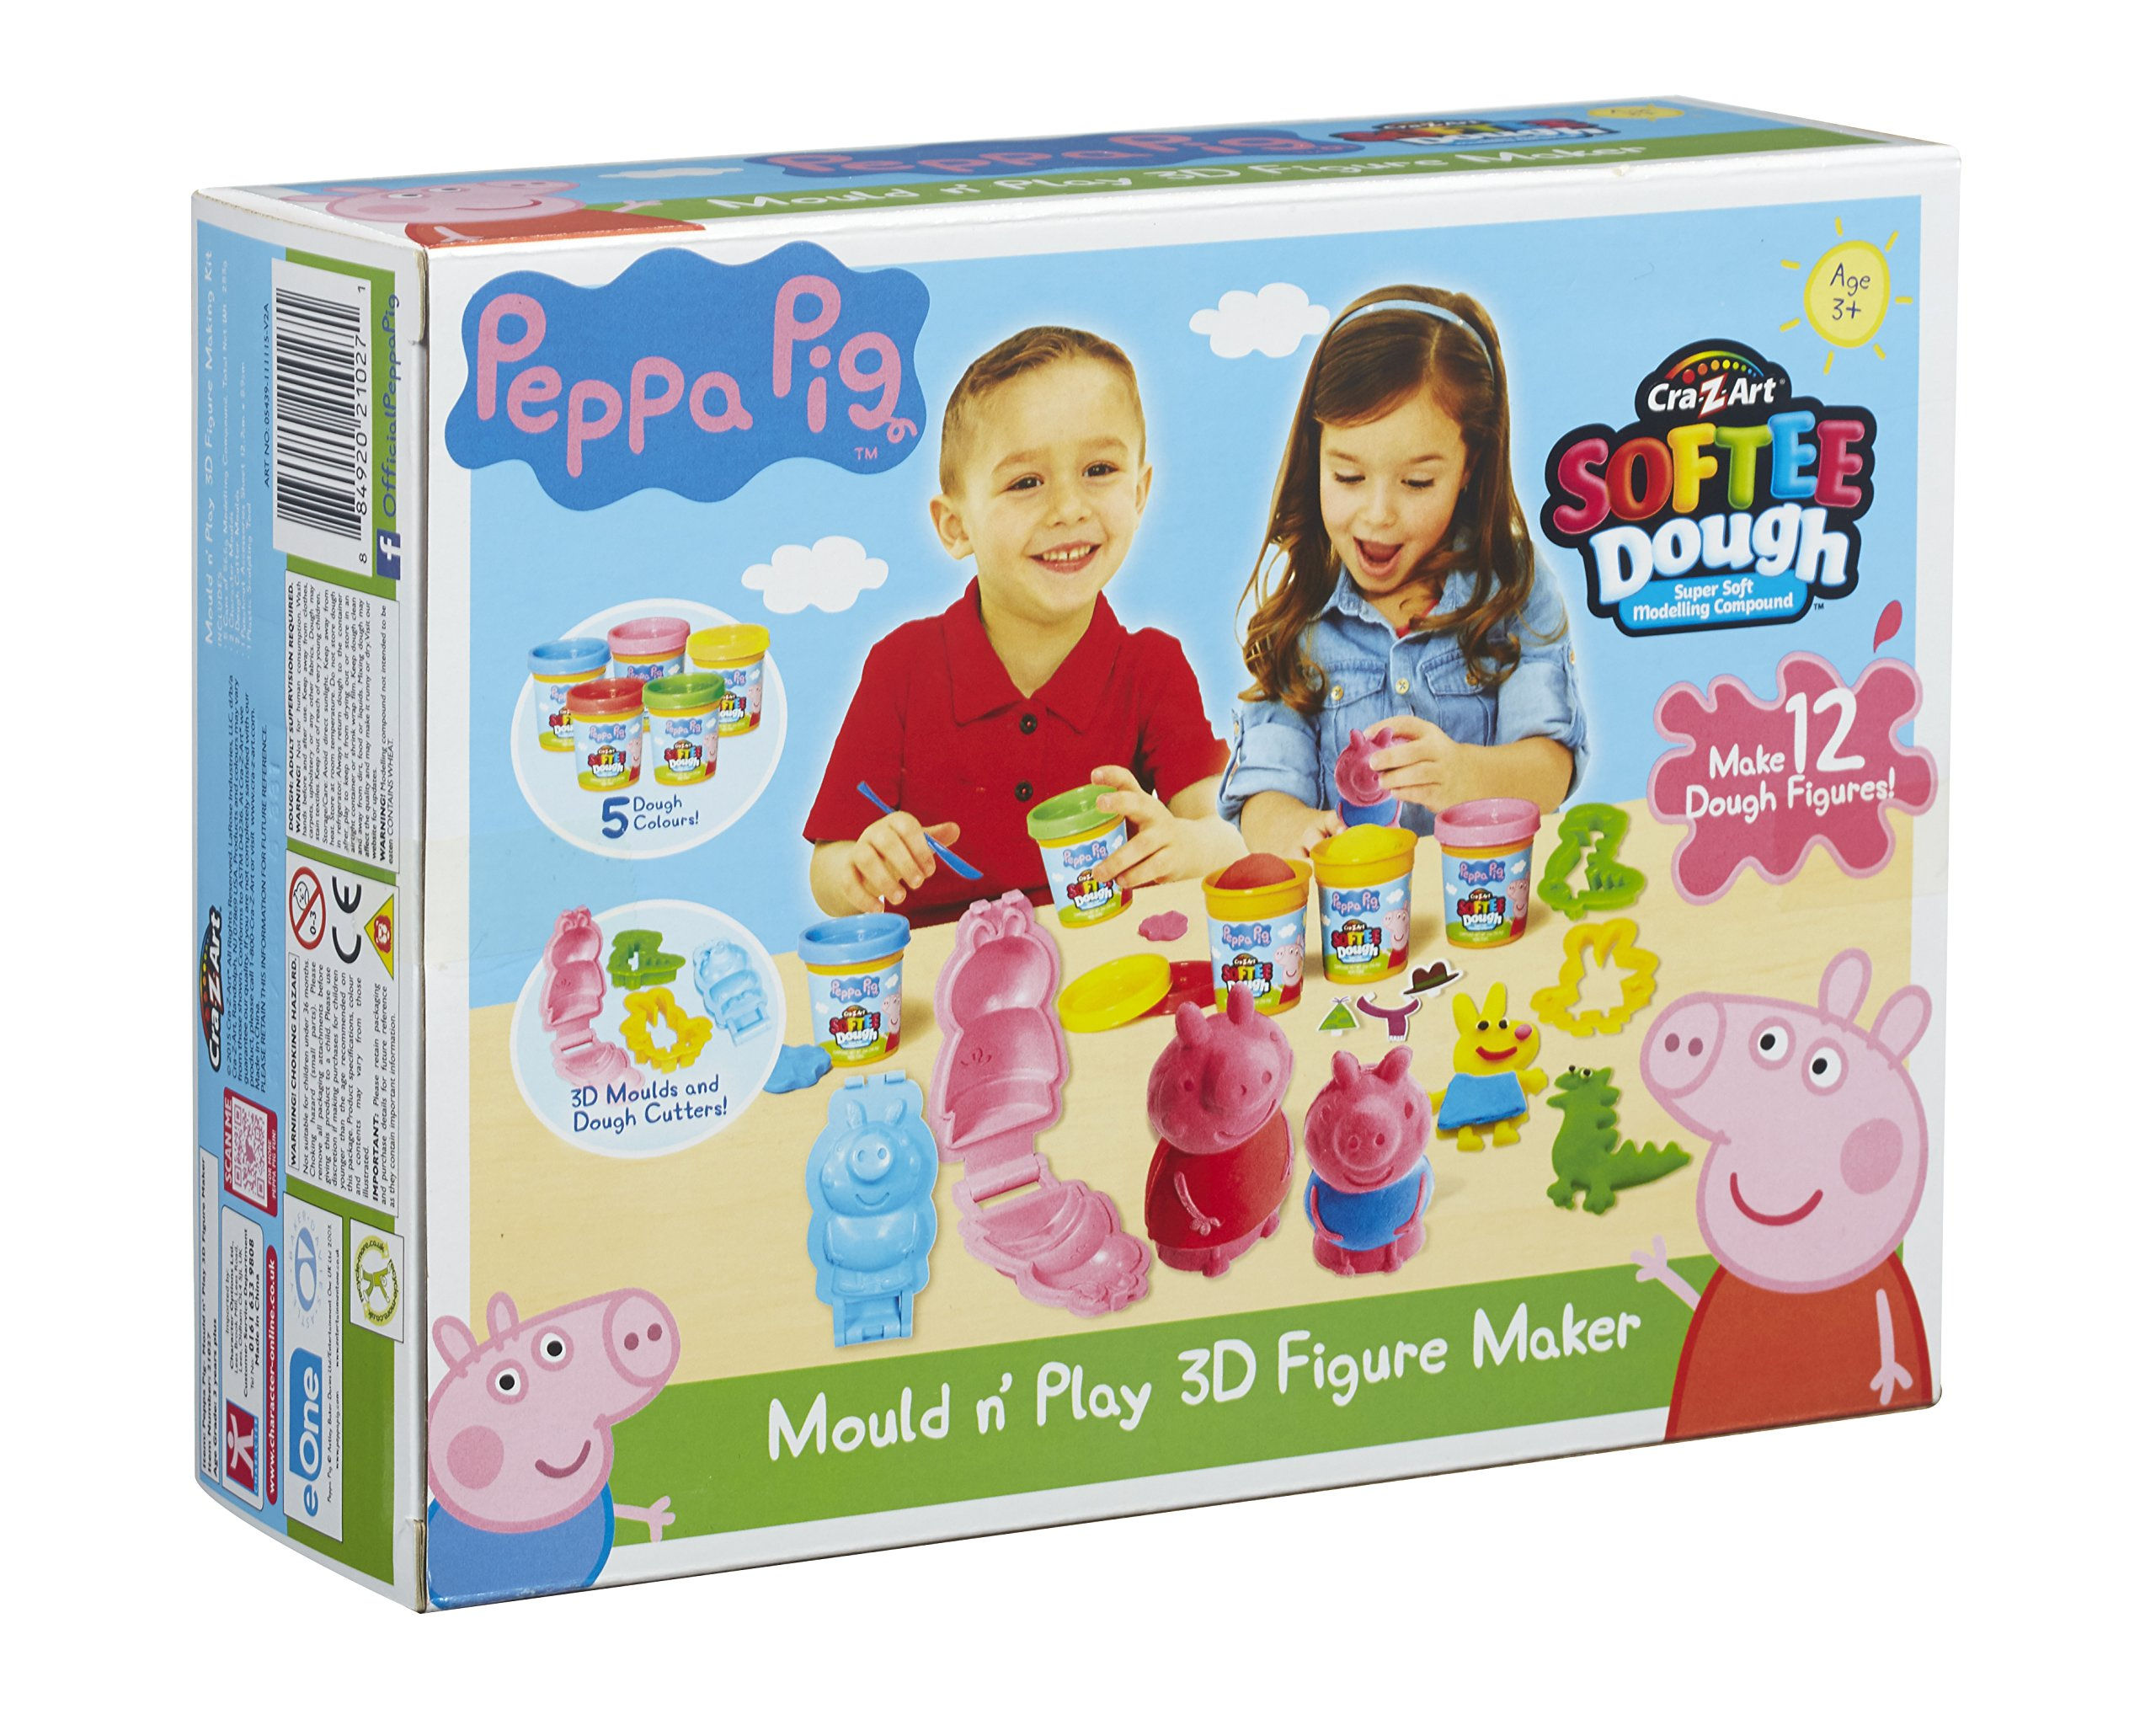 Peppa Pig Dough Mould And Play 3d Figure Maker Multi